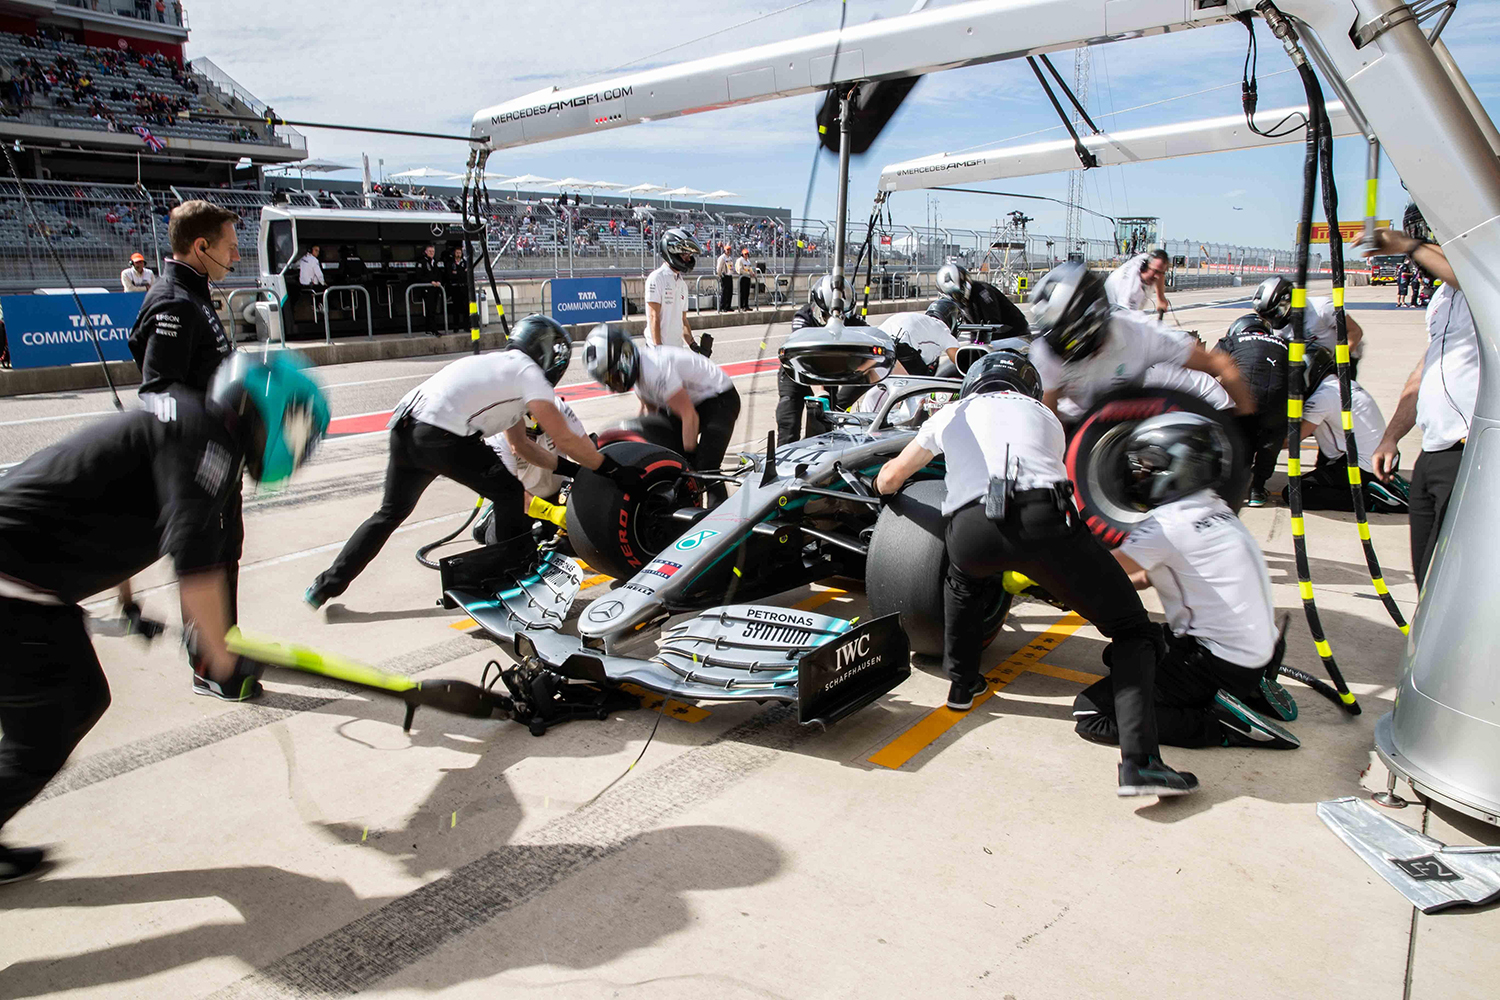 Lewis Hamilton's crew works on his car at a pit stop during the third practice session for the United States Grand Prix at the Circuit of the Americas on Saturday, Nov. 2, 2019.  [LOLA GOMEZ / AMERICAN-STATESMAN]